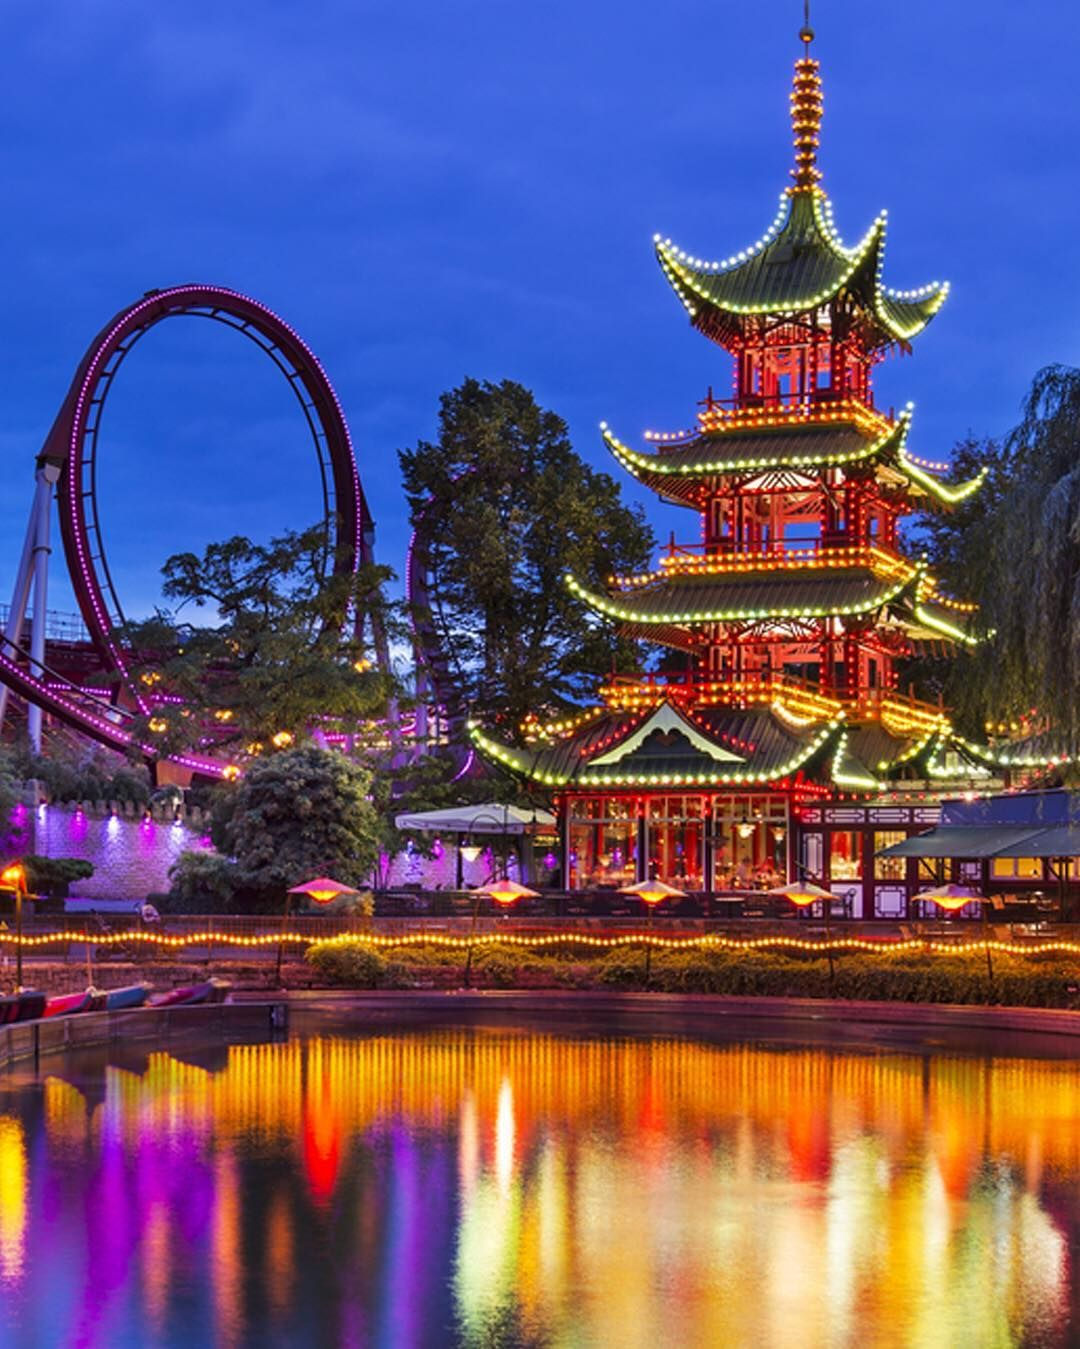 Tivoli Without Rides No Trip To Copenhagen Is Complete Without A Visit To The